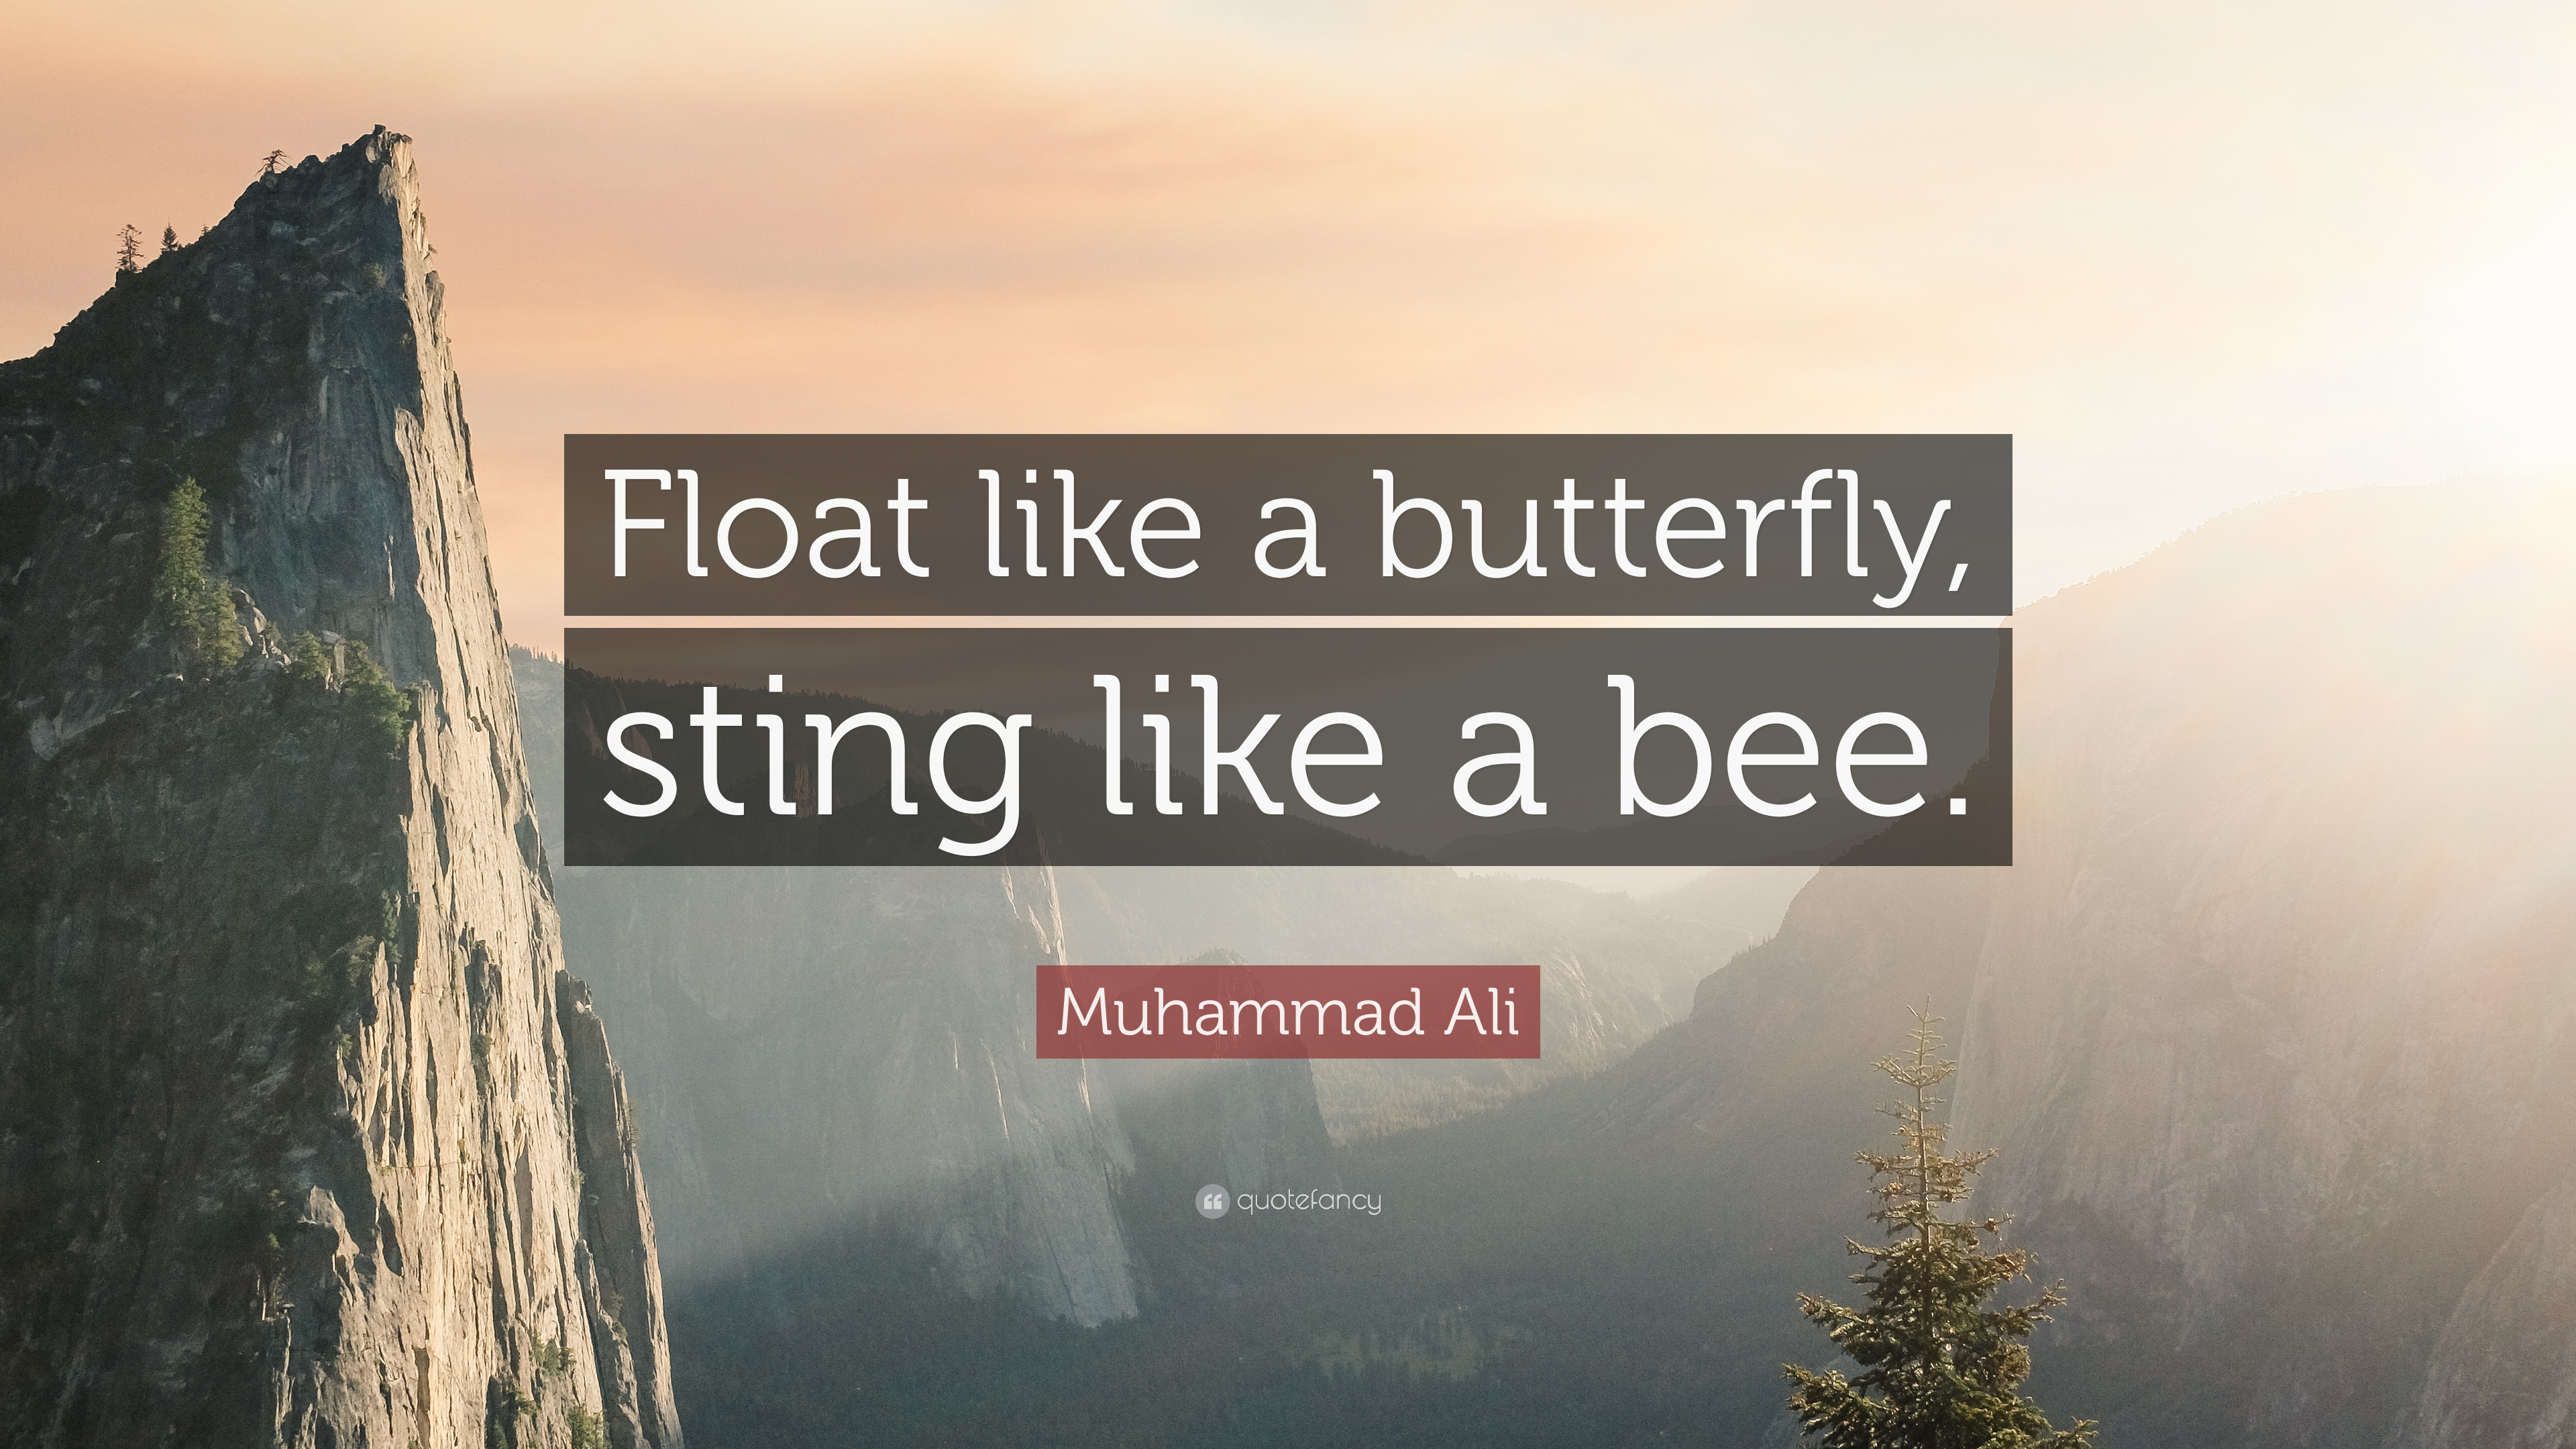 download float like a butterfly sting like a bee wallpaper